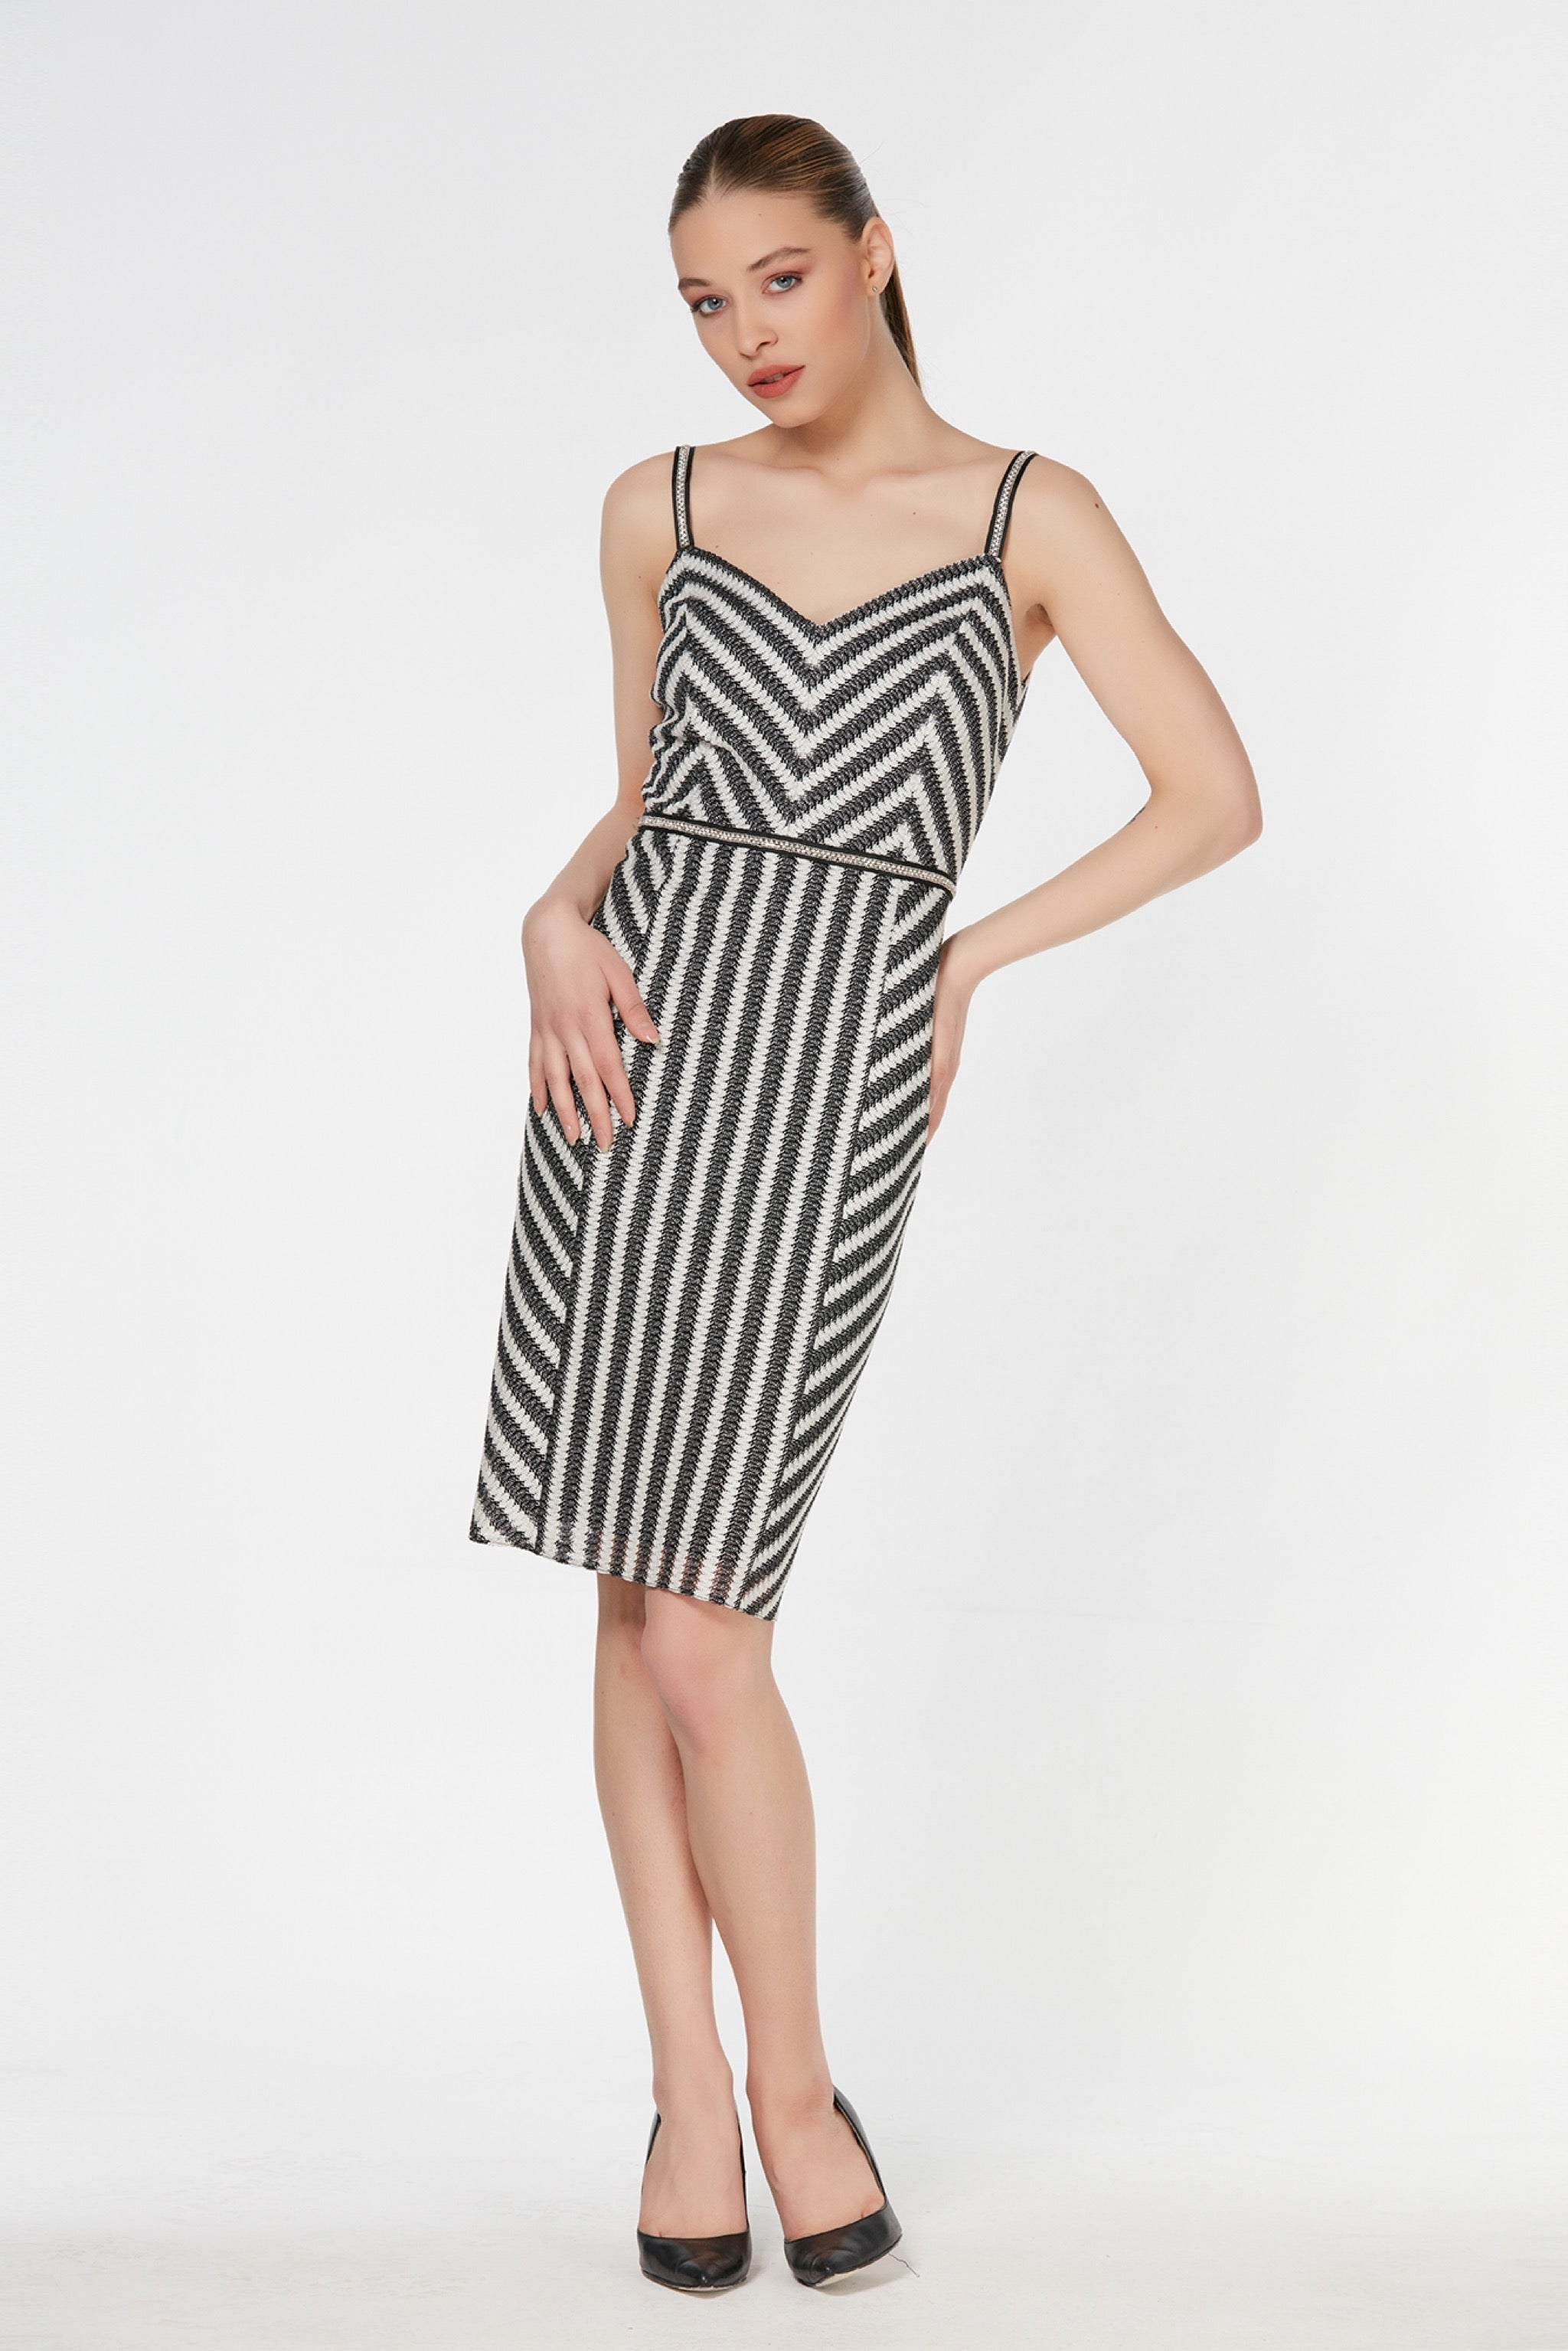 Knee length black and white striped skater strapless dress - 54411